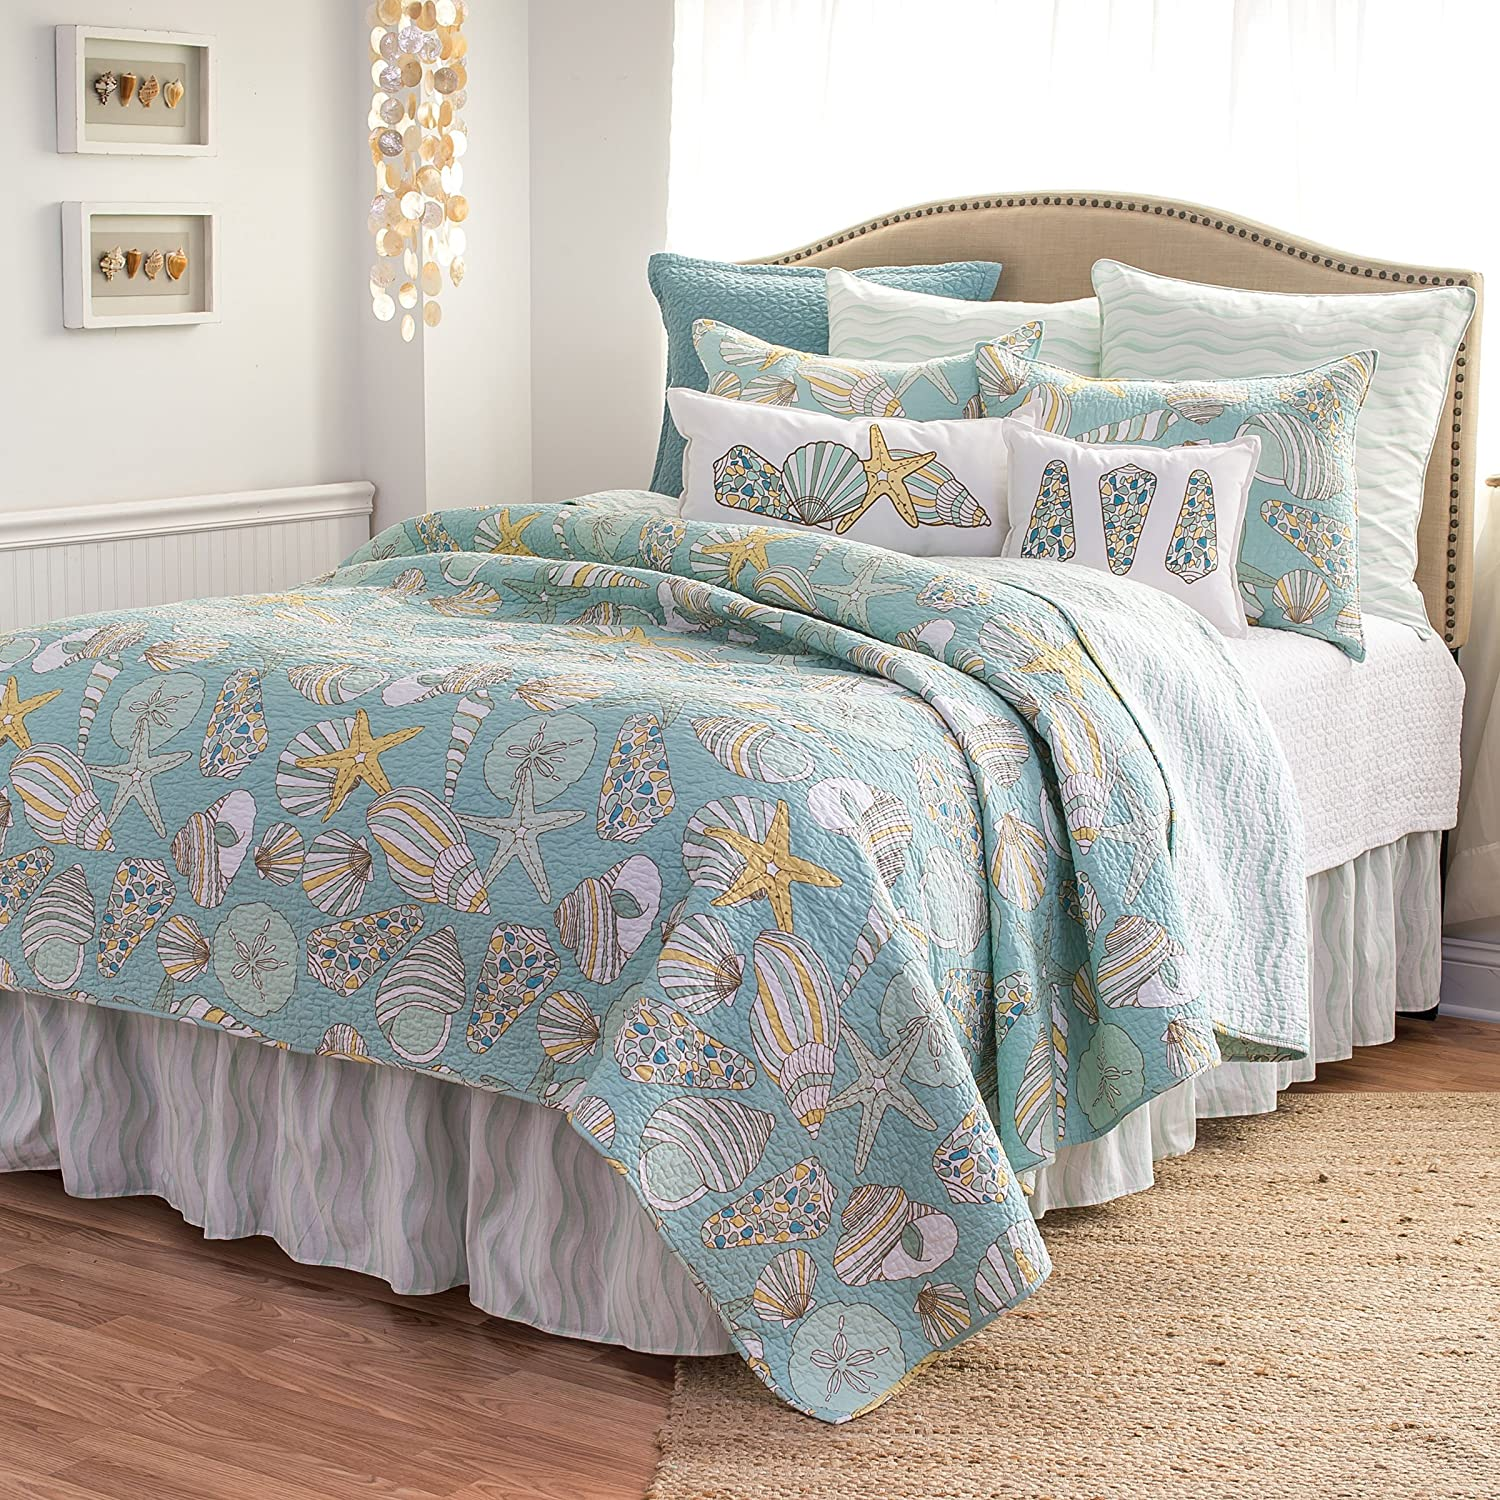 C&F Home Cabana Bay 3 Piece Quilt Set All-Season Reversible Bedspread Oversized Bedding Coverlet, King Size, Blue